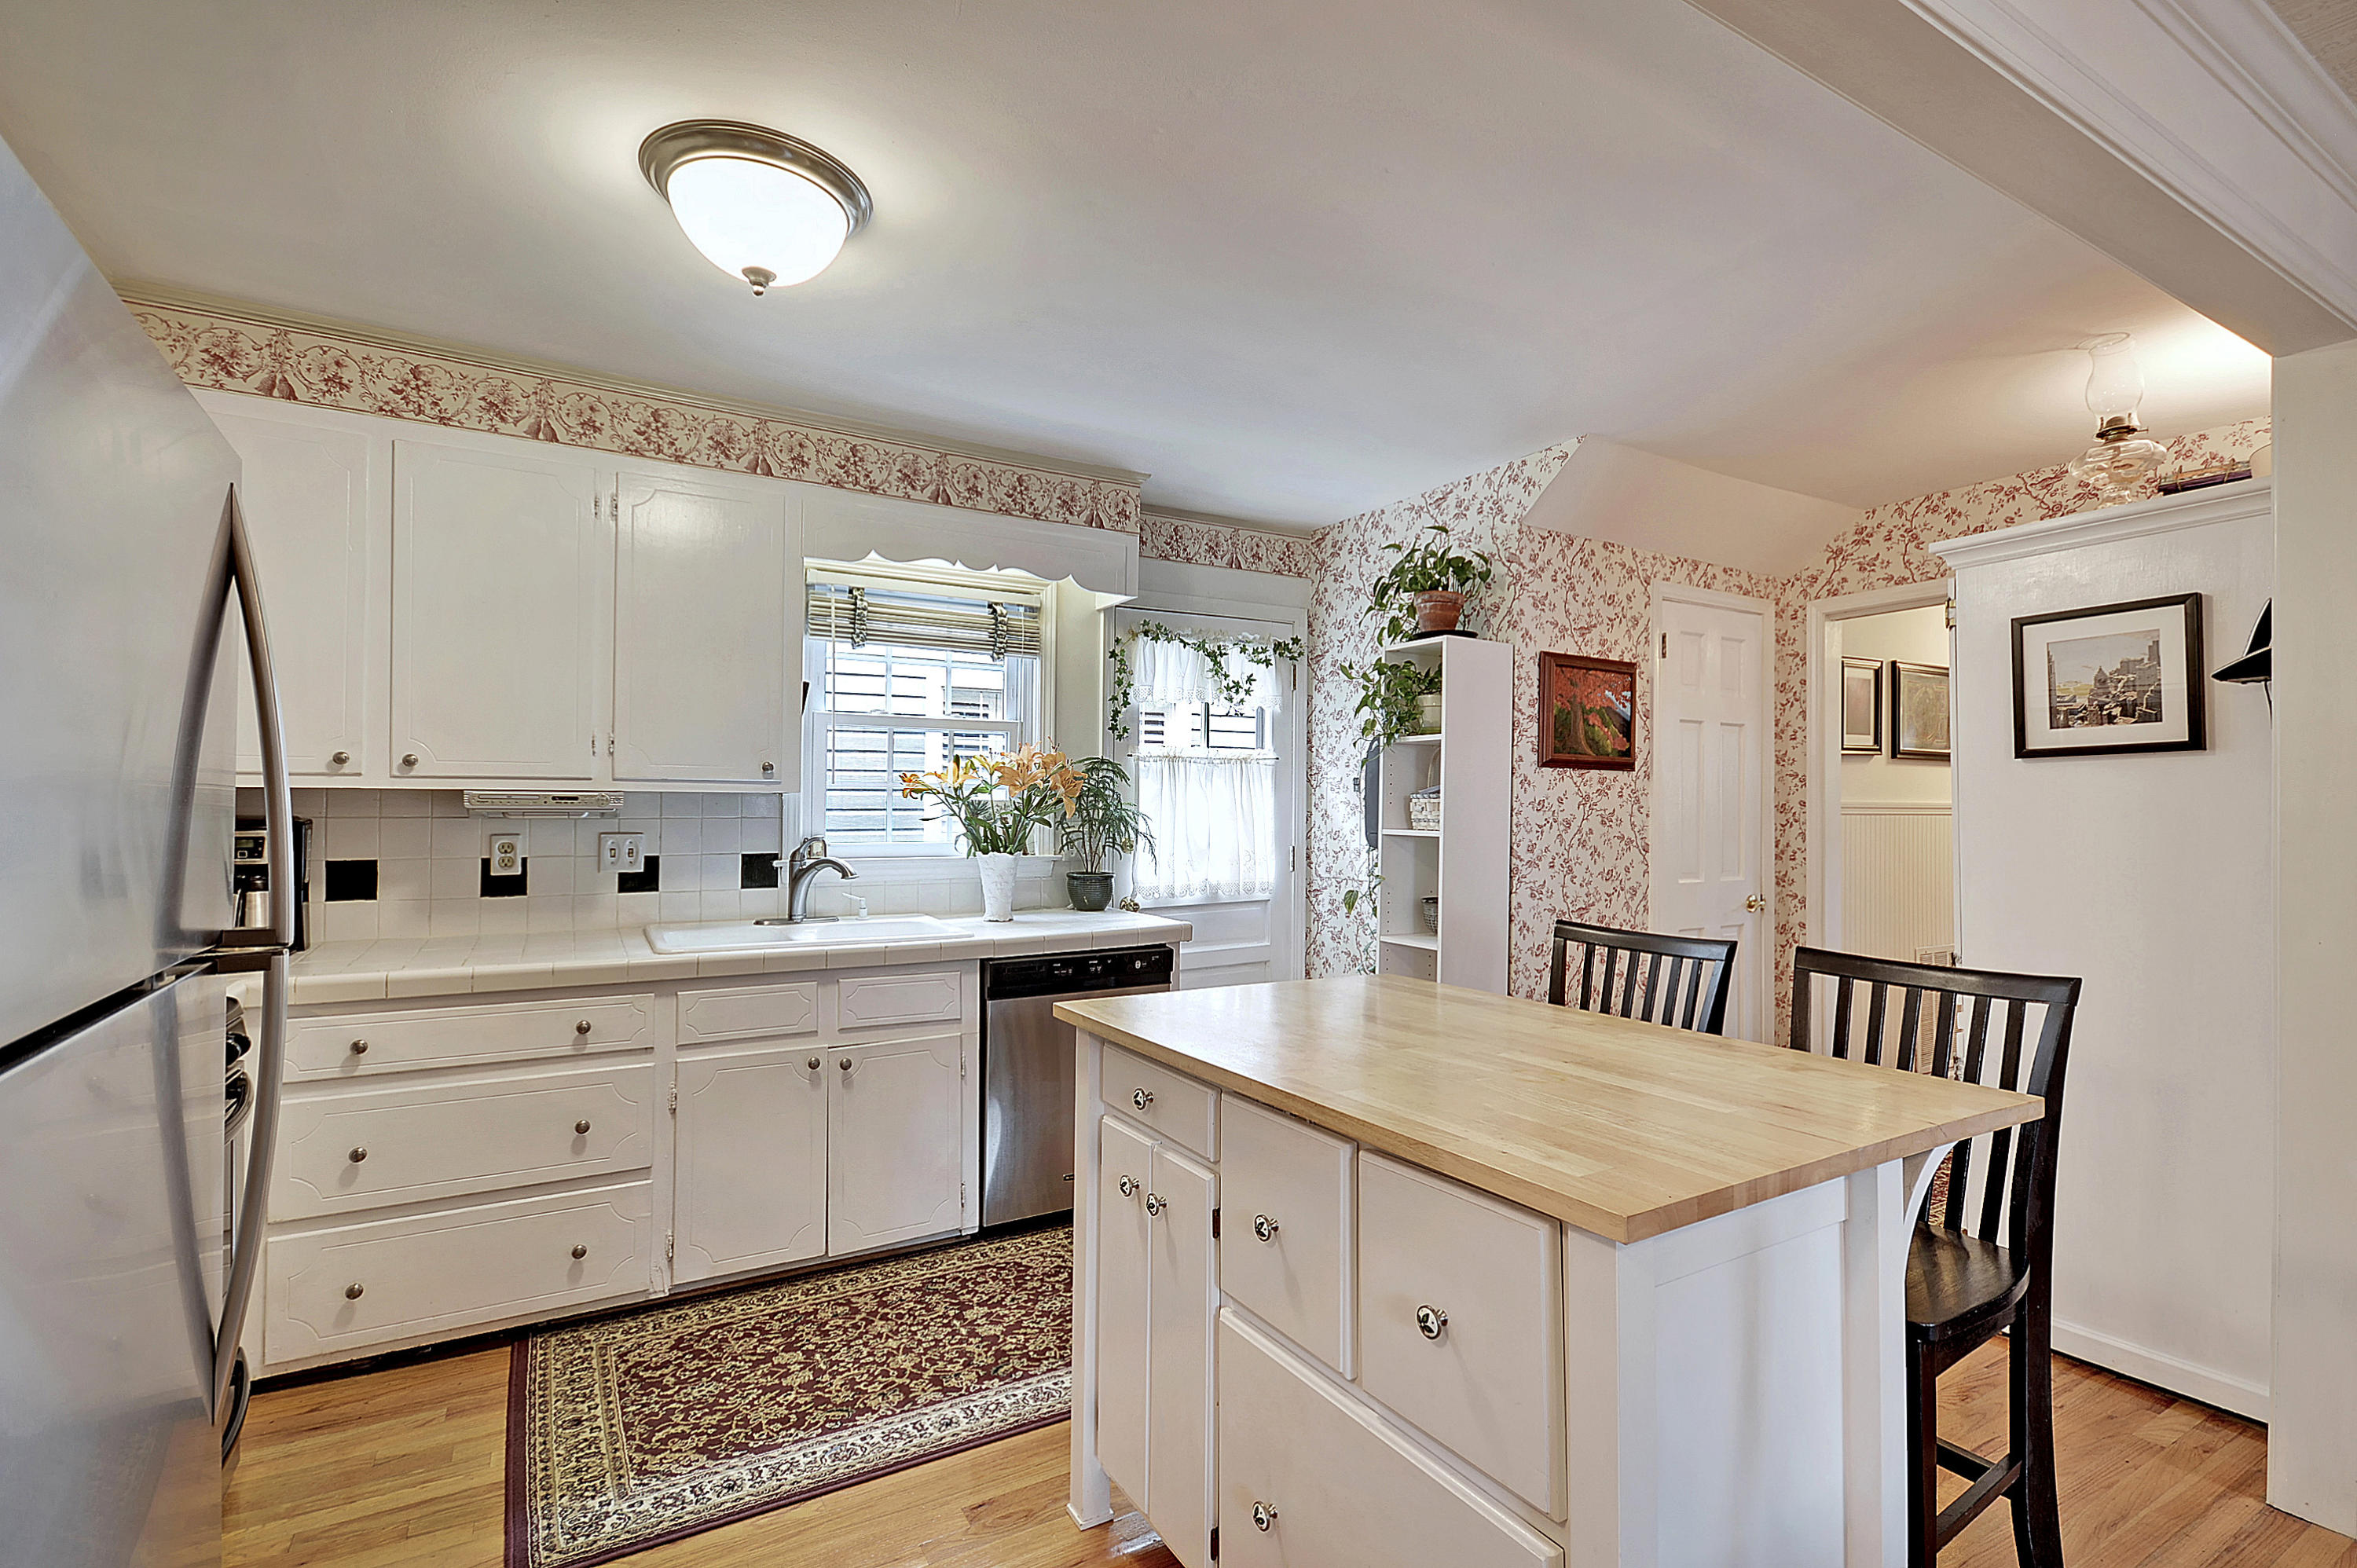 South of Broad Homes For Sale - 0 Rutledge, Charleston, SC - 36